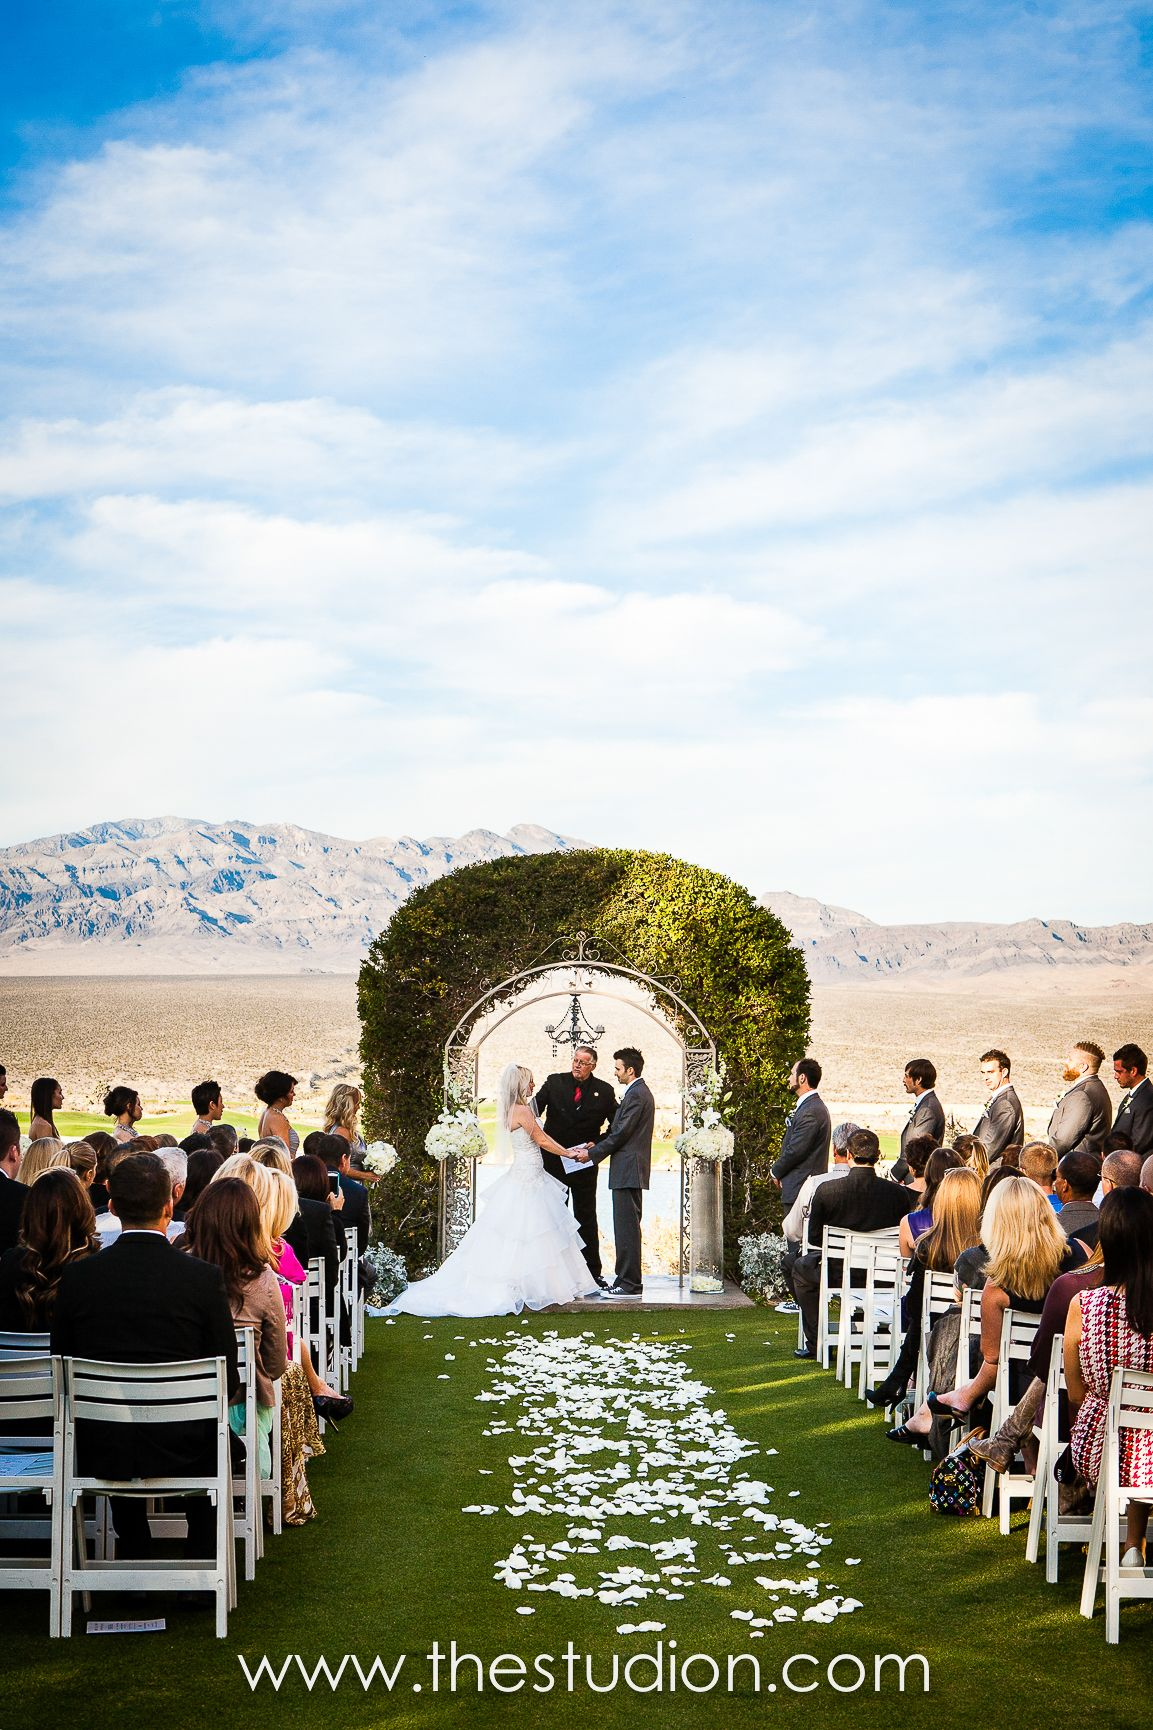 Wedding Photo Captured By Studionphoto At The Las Vegas Paiute Golf Resort